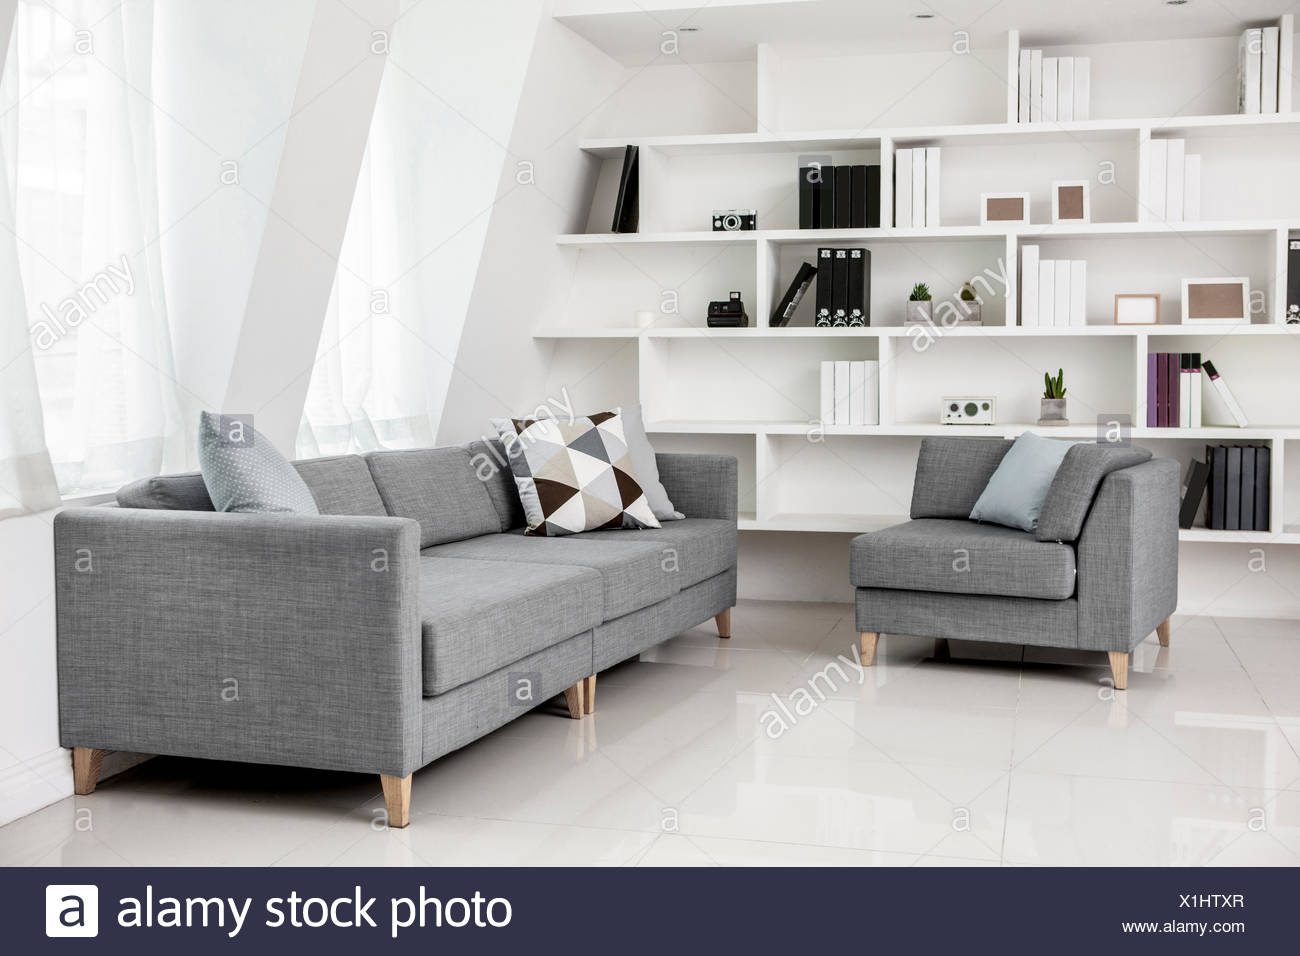 Bookcases Living Room Stock Photos & Bookcases Living Room ...